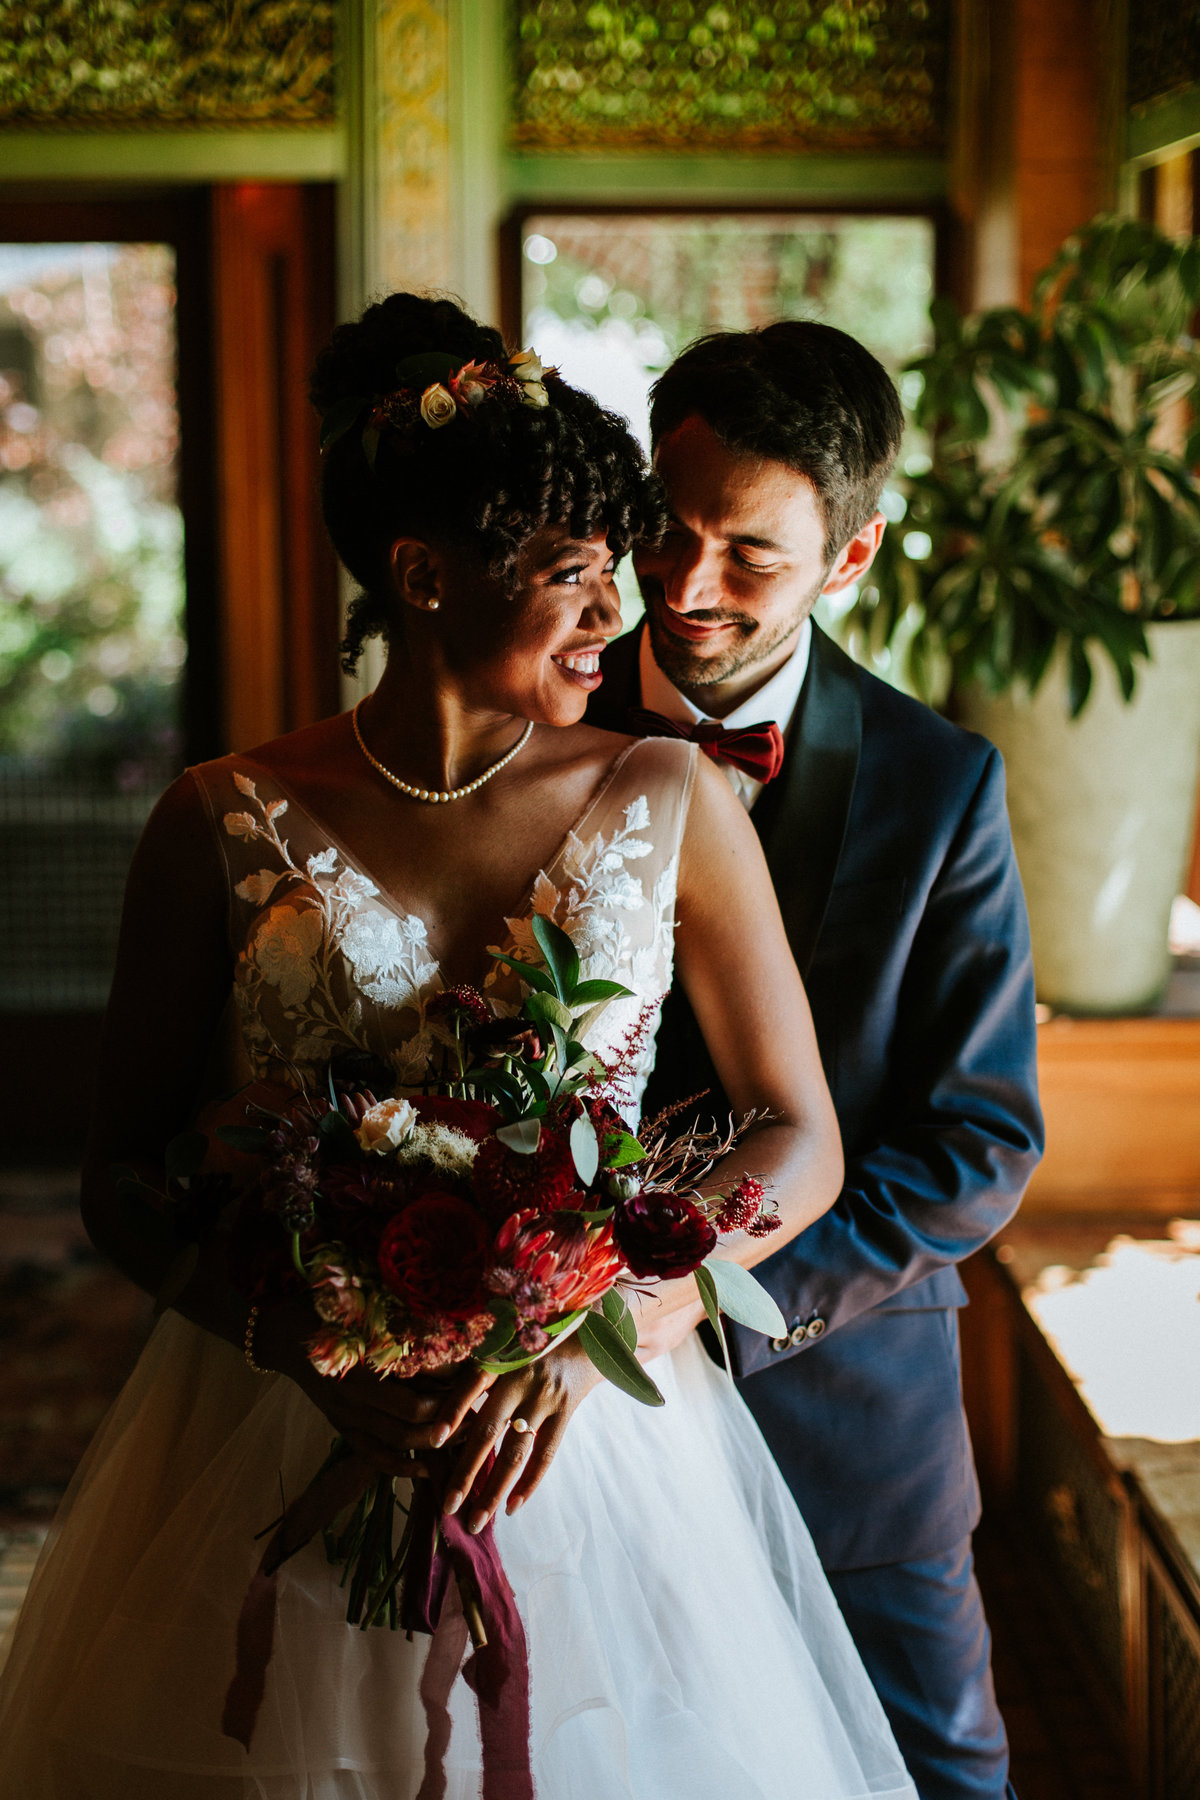 One of the top wedding photos of 2019. Taken by Adore Wedding Photography- Toledo Ohio Wedding Photographers. This photo is of bride and groom laughing after the wedding ceremony